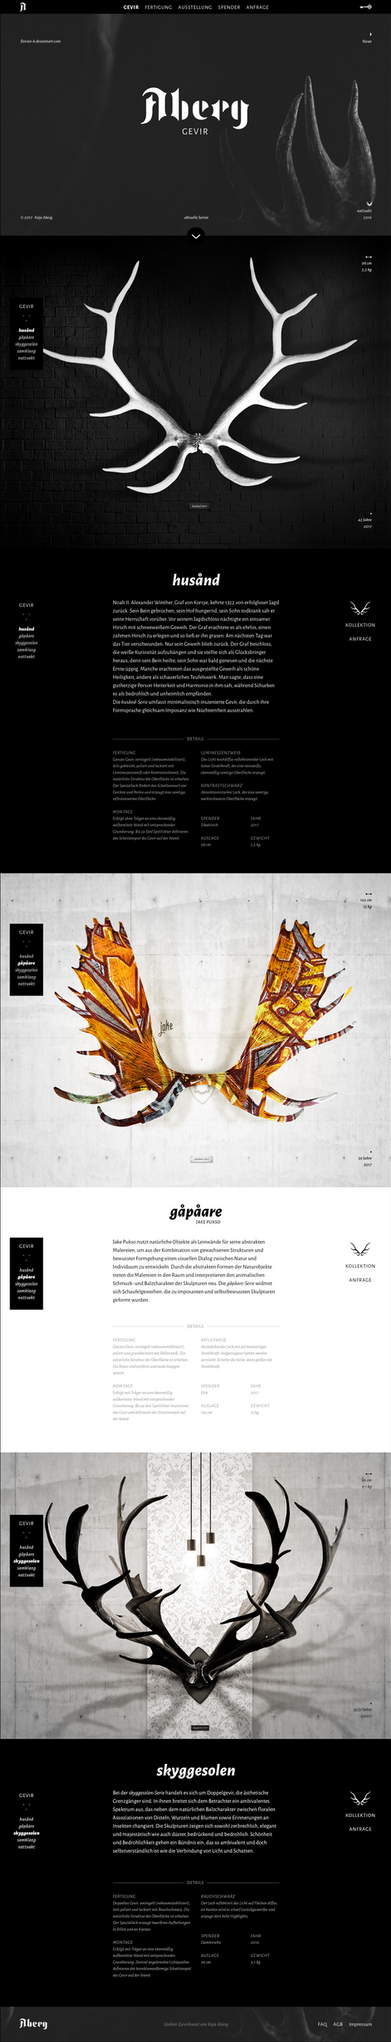 Website: Aberg by Florian-K